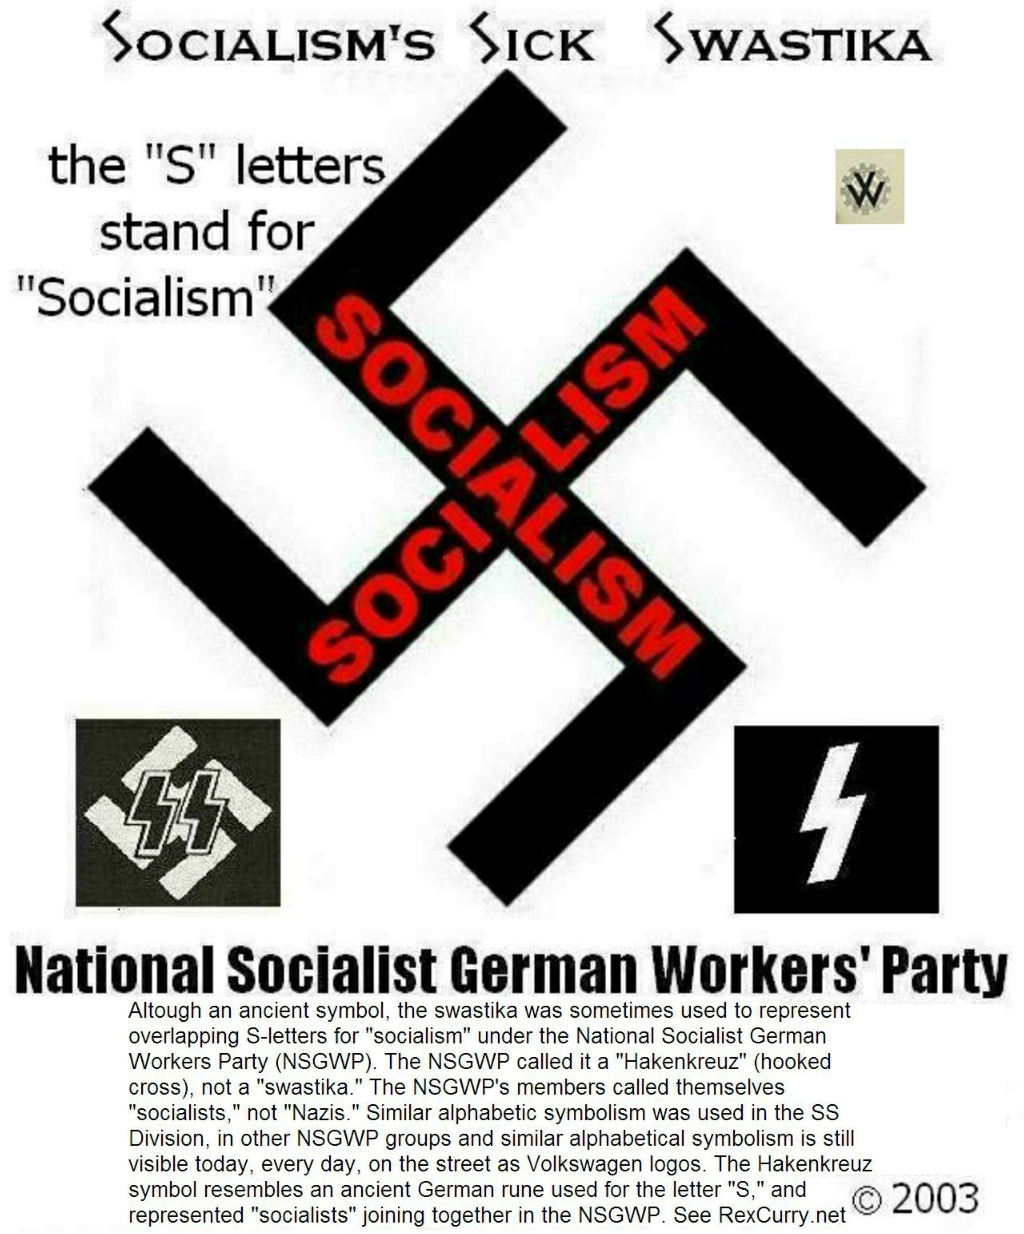 Socialist Cross, Cross of Socialism, Swastika,1932 National Socialist election poster